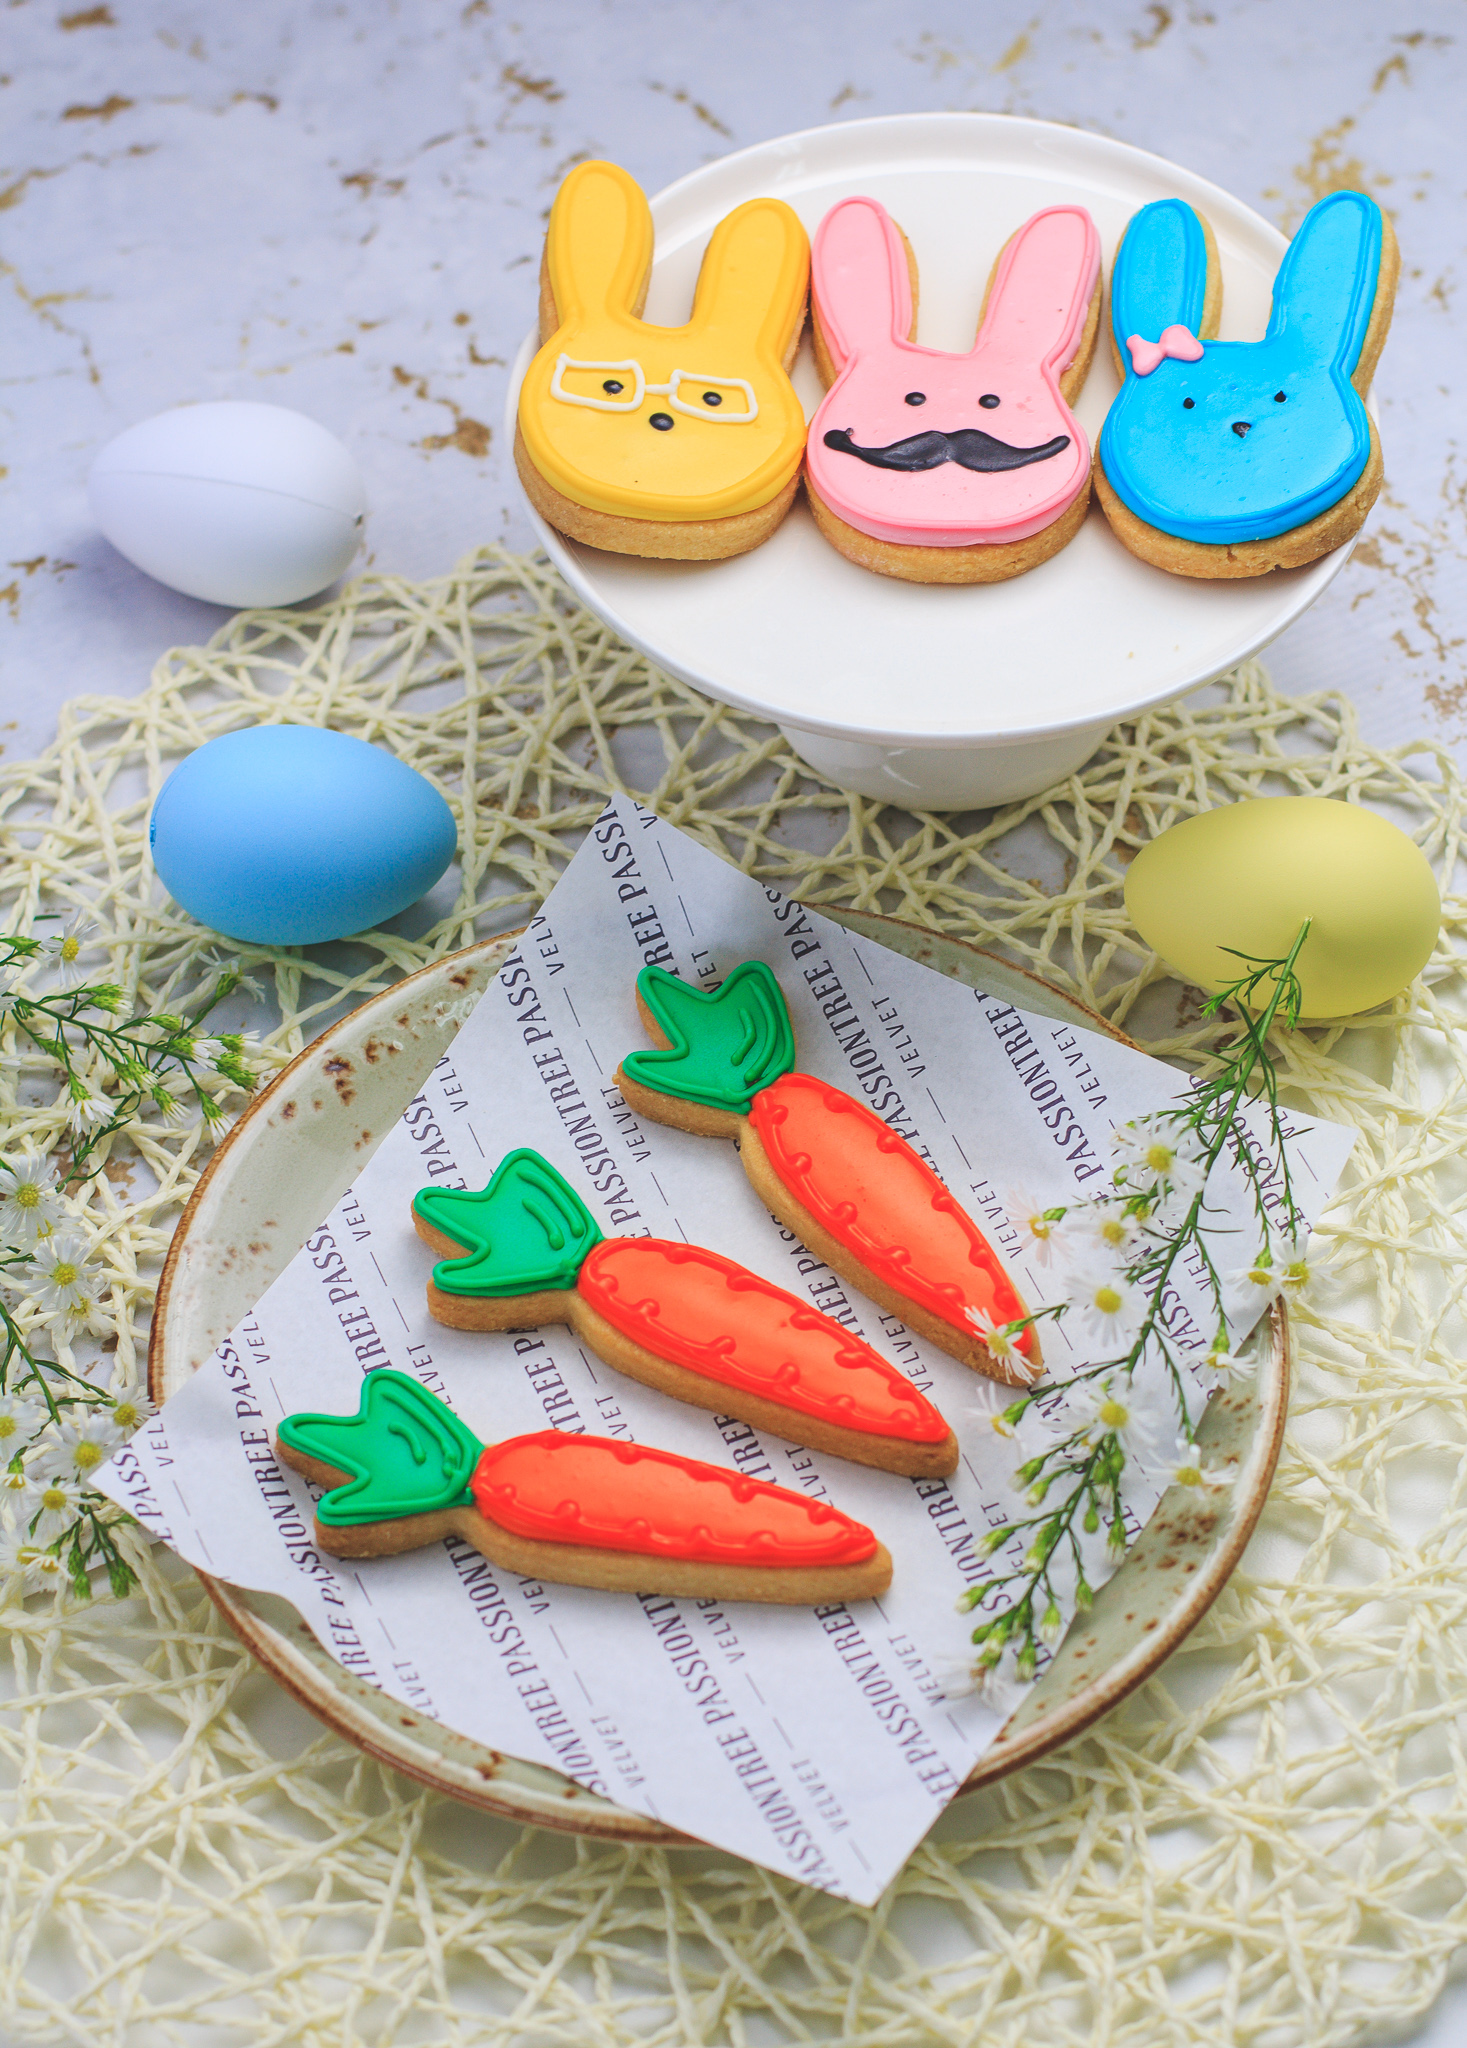 Passiontree Velvet Bunny Carrot Biscuit Easter